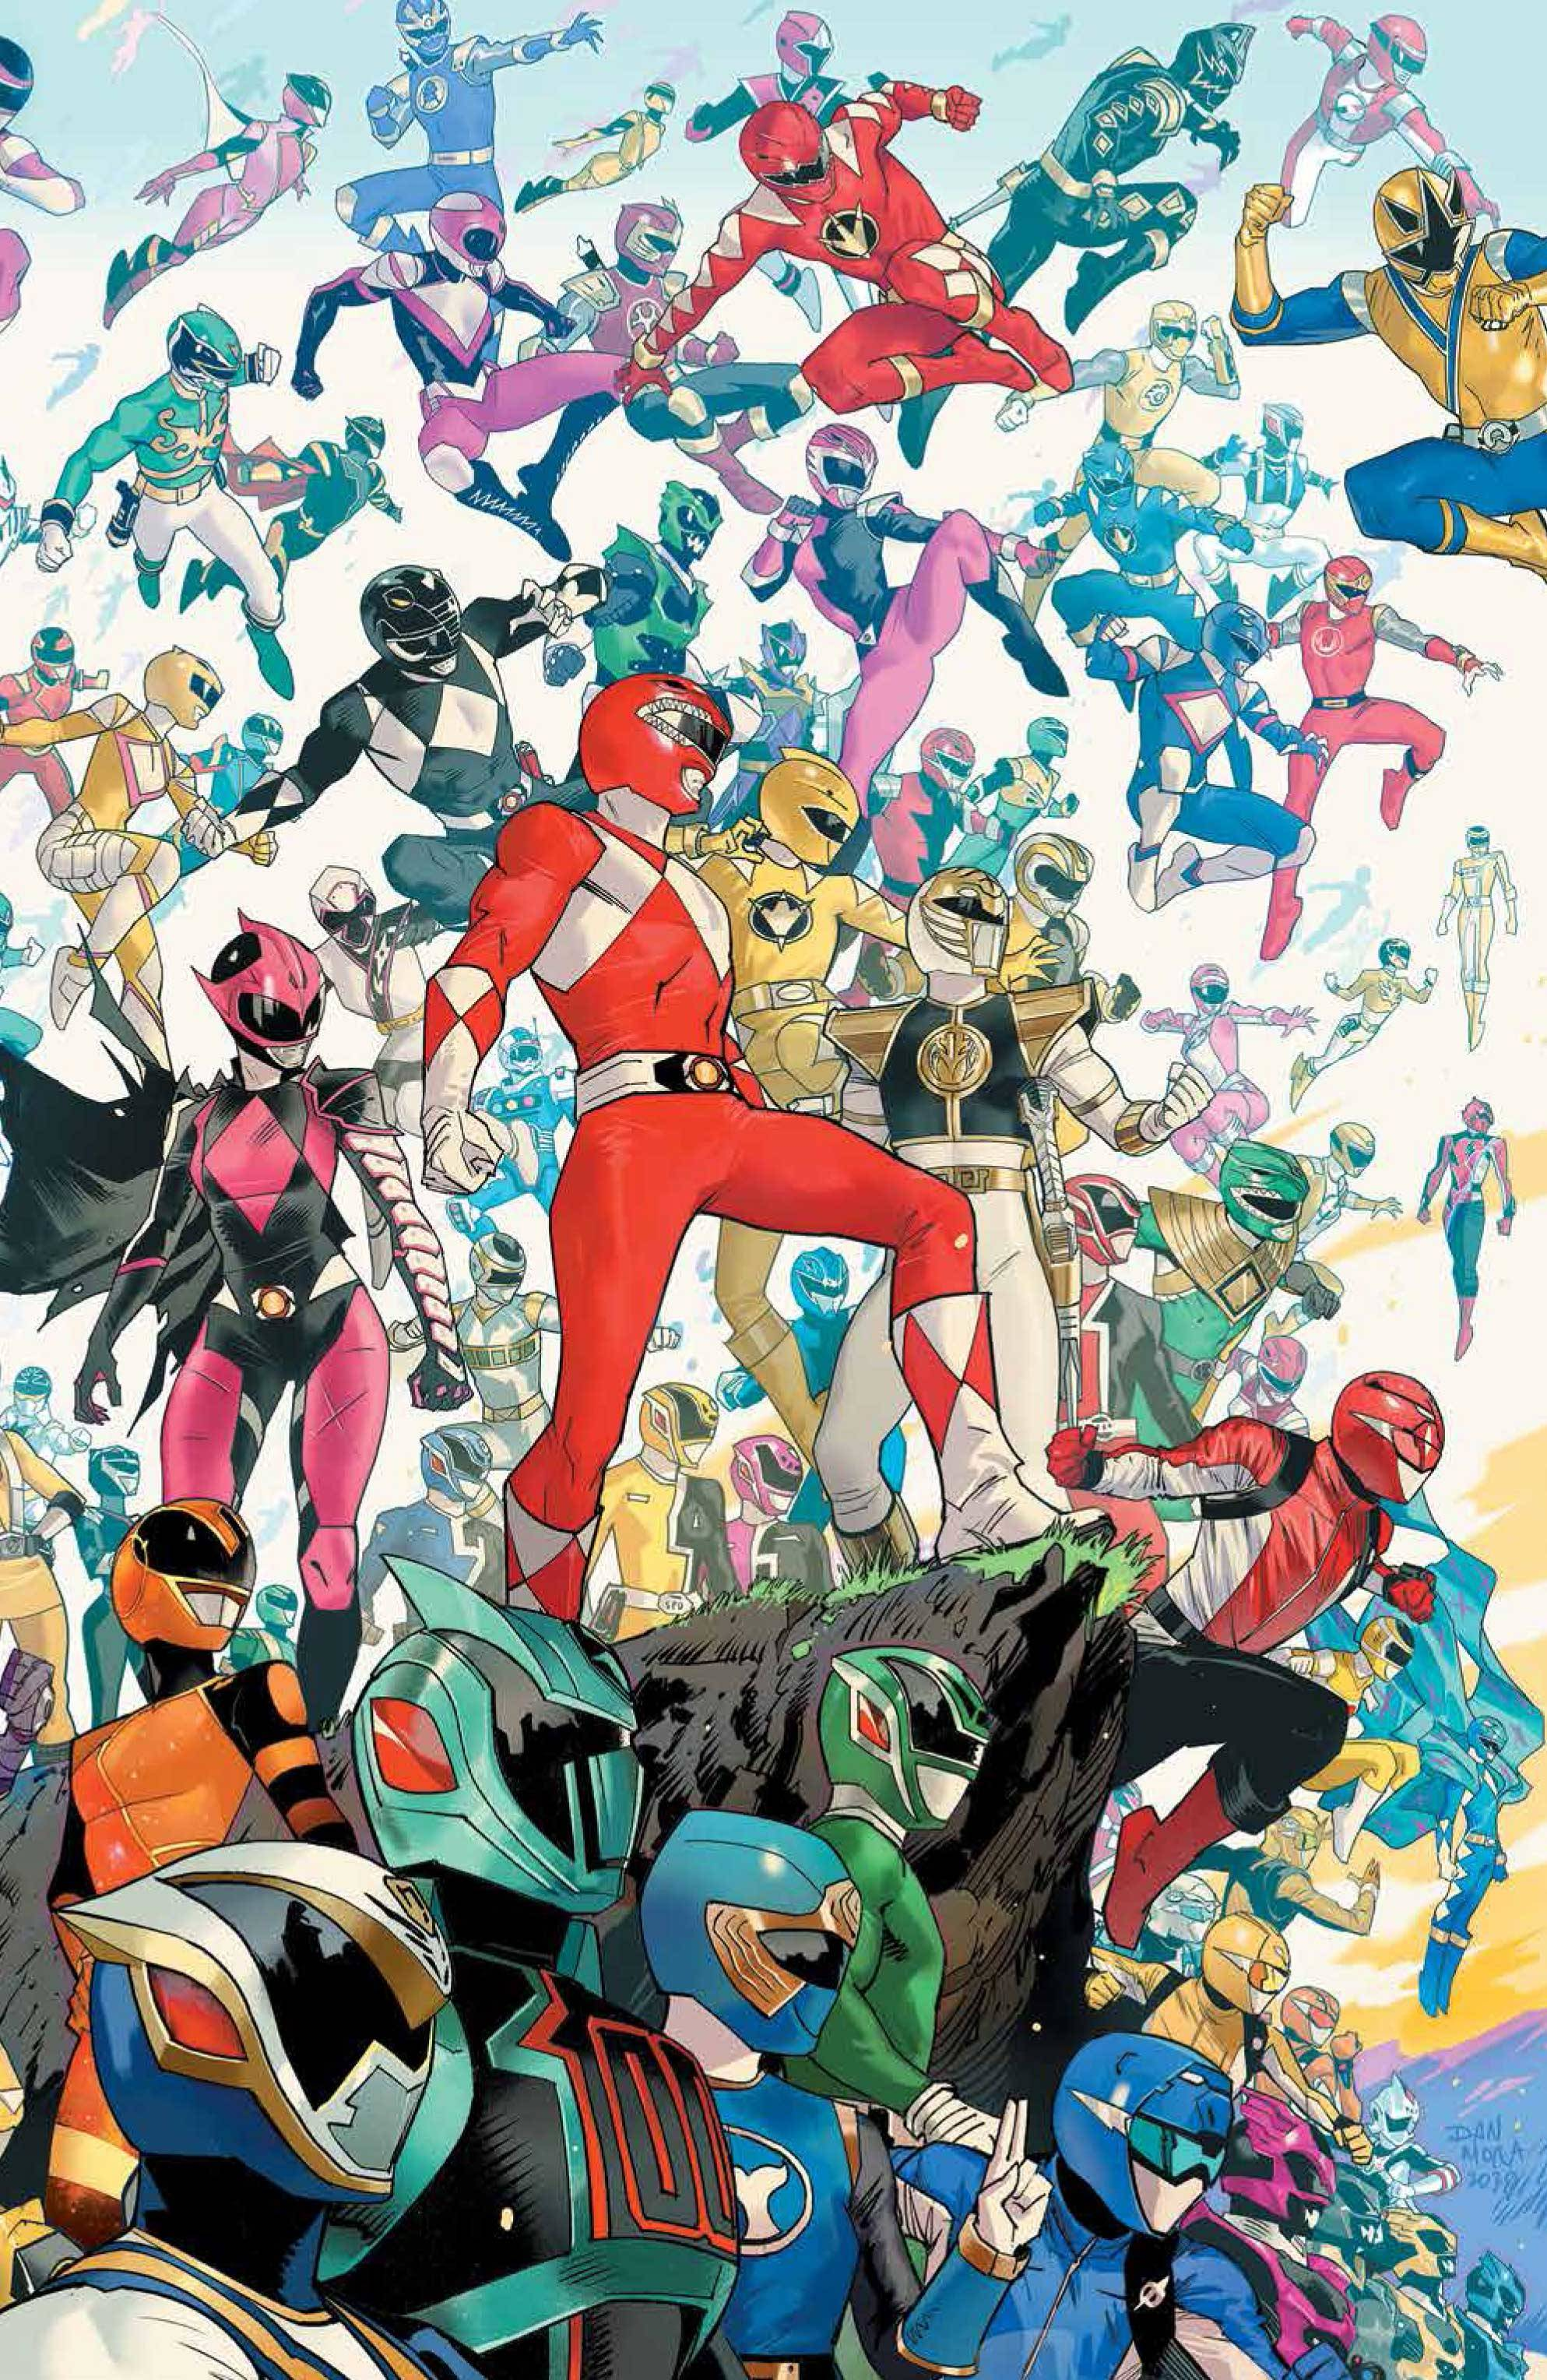 POWER RANGERS #2 10 COPY MORA INCV